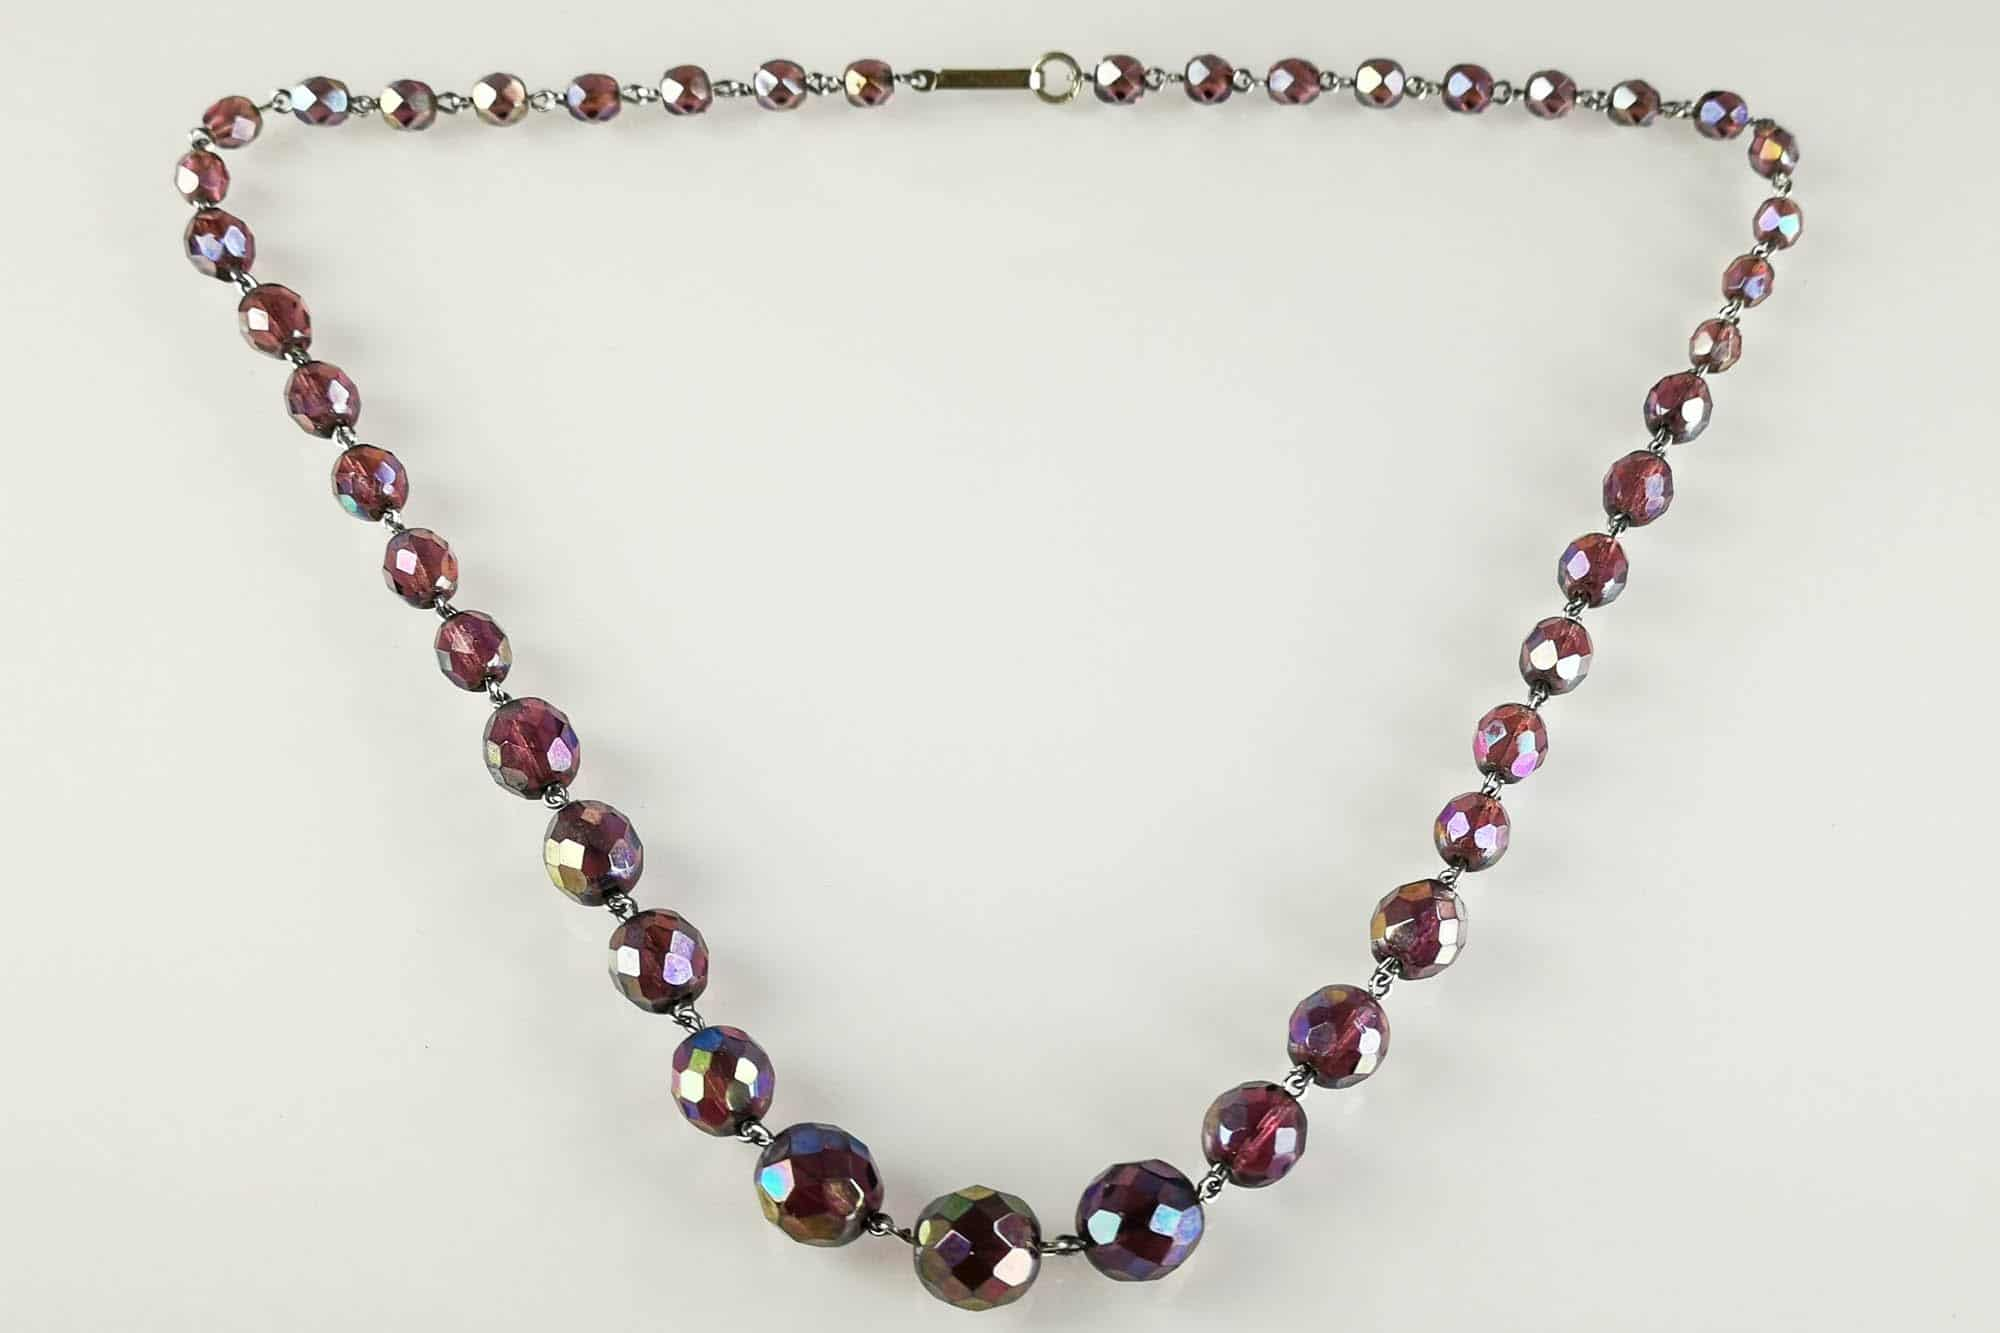 carnival glass necklace